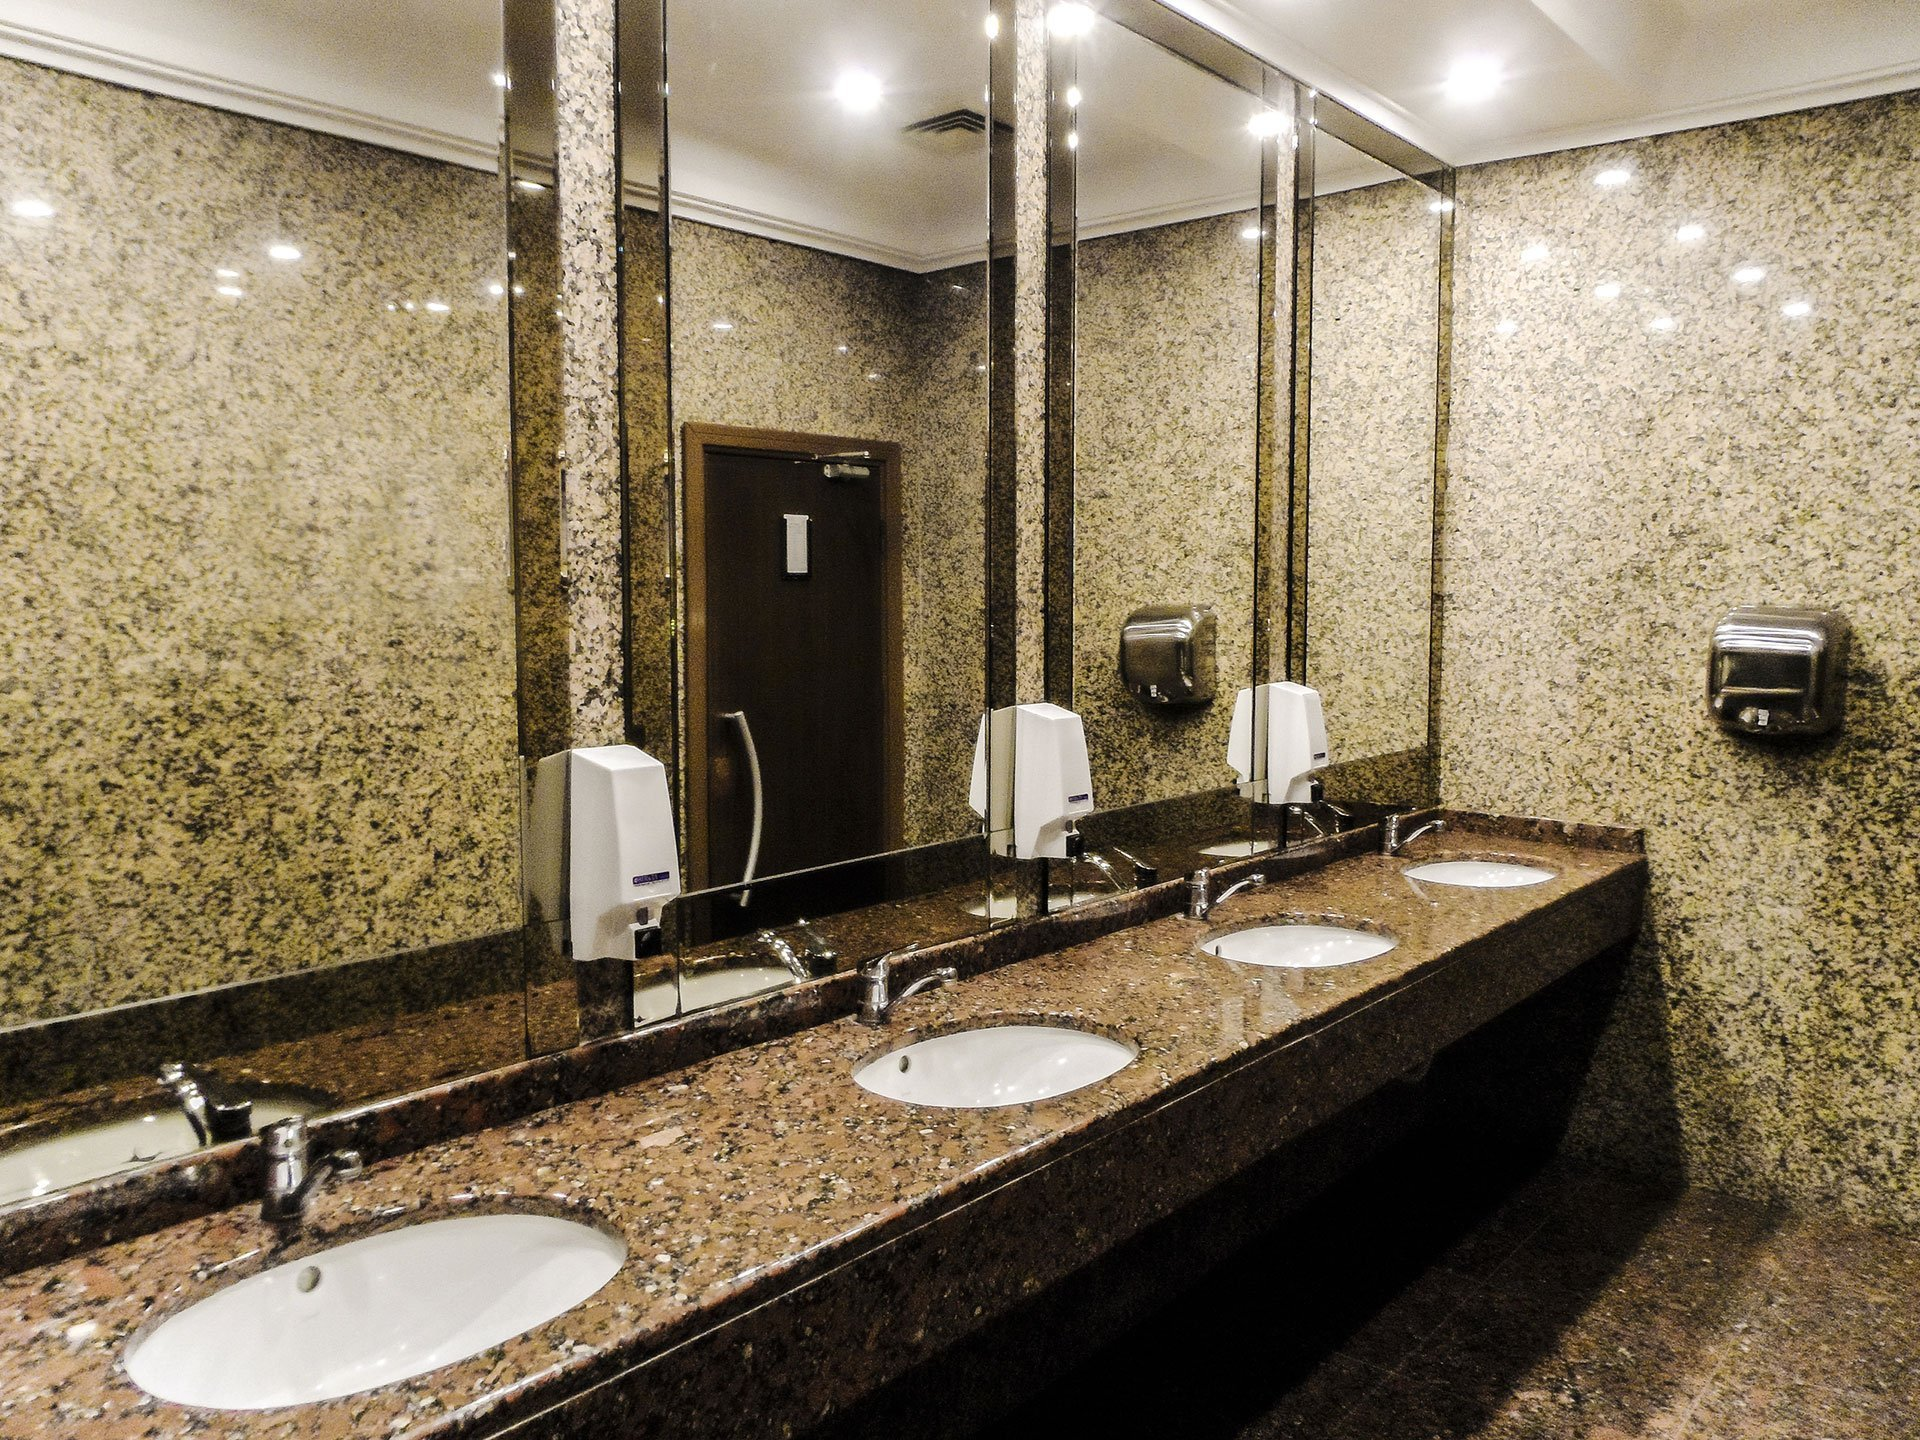 Bathroom with granite countertops - Architectural Surfaces For Commercial Applications